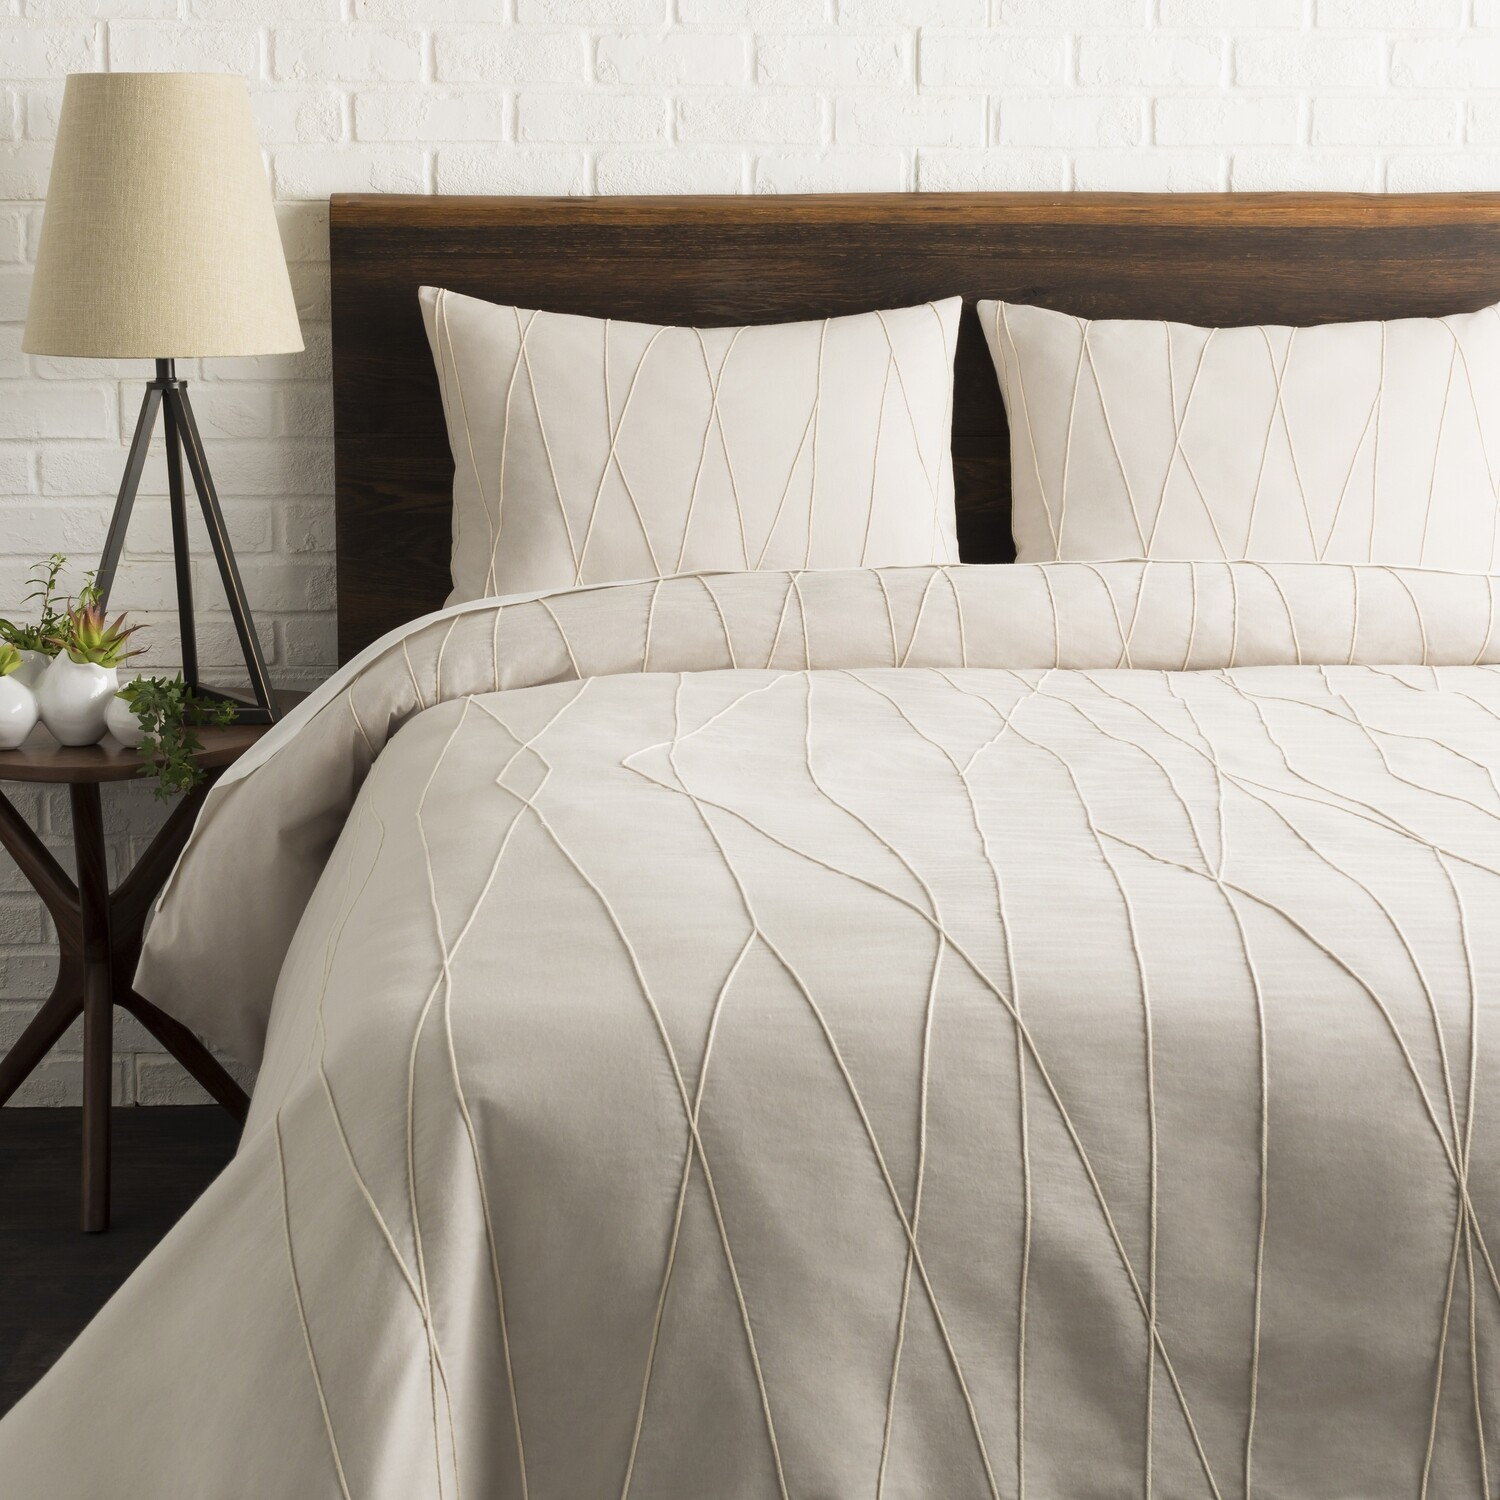 MANOMET Duvet Cover with Two Shams